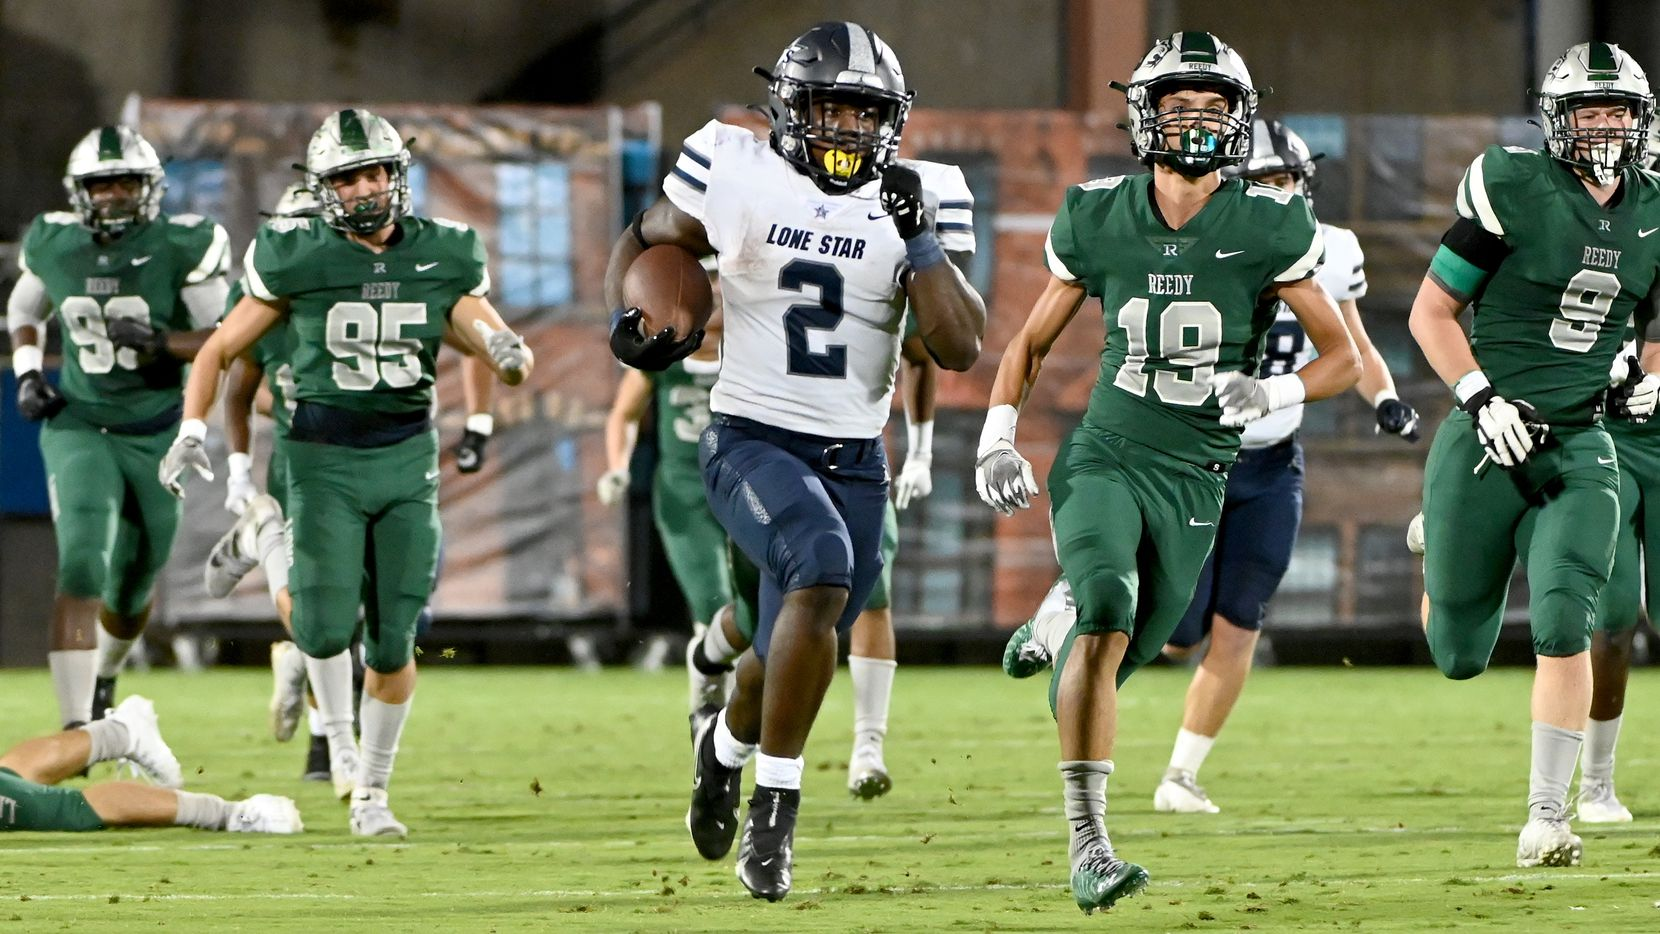 Frisco Lone Star's Ashton Jeanty (2) runs for a long touchdown in the first half of a high school football game between Frisco Reedy and Frisco Lone Star, Friday, Sept. 30, 2021, in Frisco, Texas. (Matt Strasen/Special Contributor)